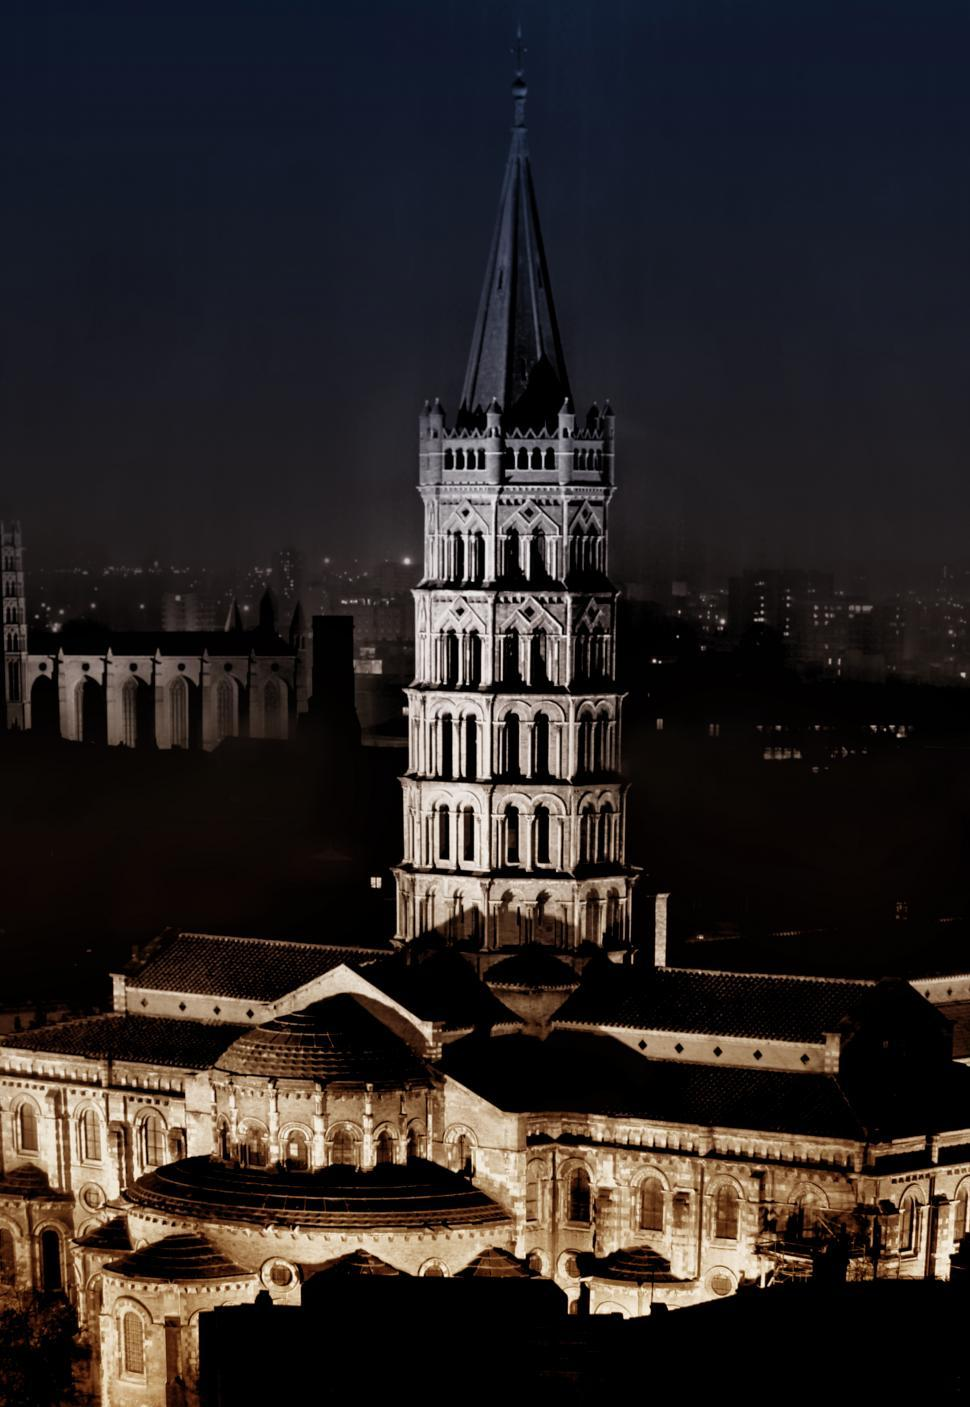 Download Free Stock HD Photo of Basilica of Saint Sernin at Night - Toulouse - France Online